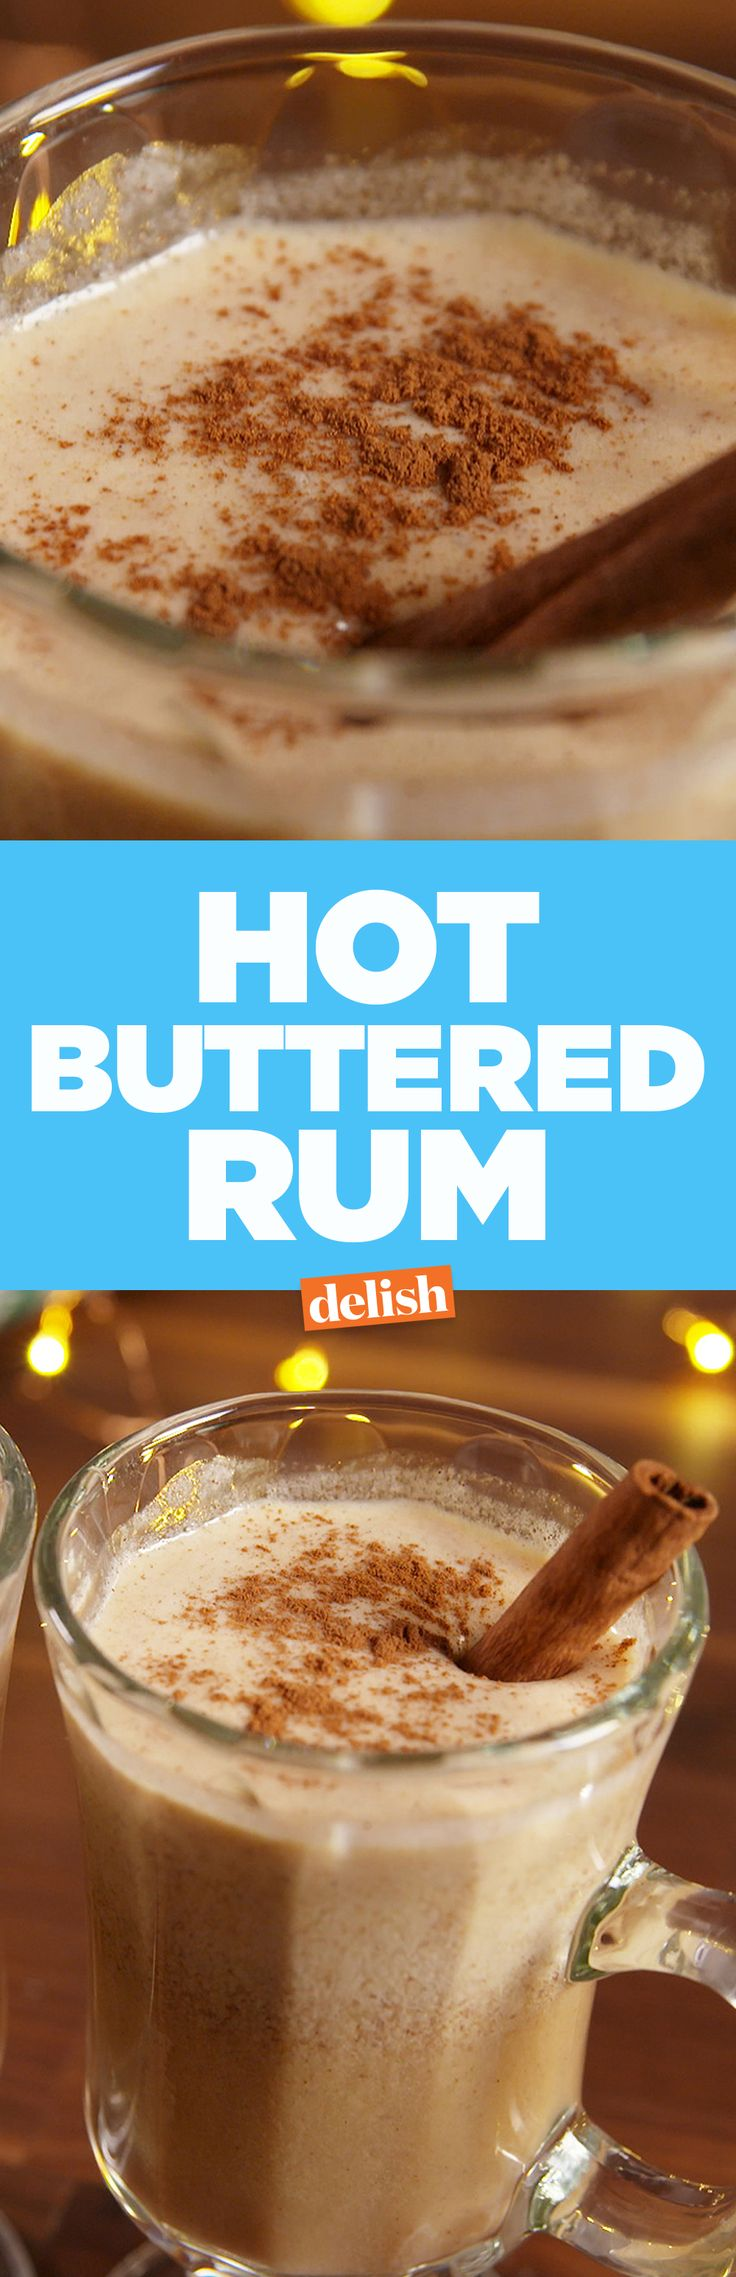 Bet you had no idea that this is how you make Hot Buttered Rum. Get the recipe from Delish.com.